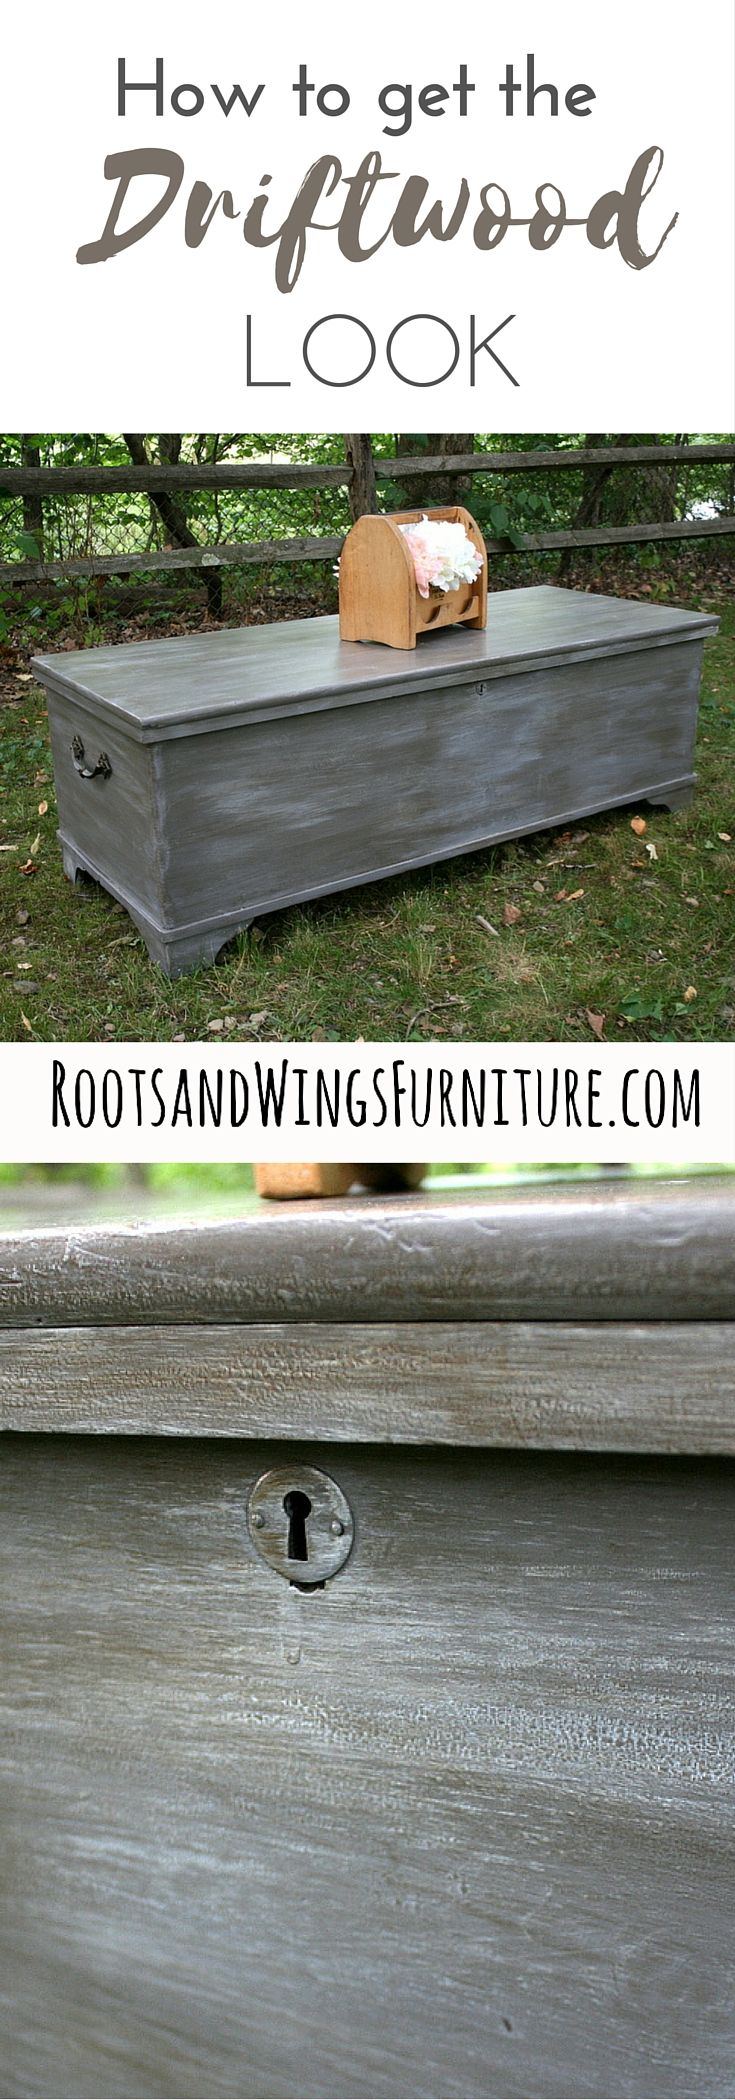 diy furniture refinishing projects. How To Get The Driftwood Look. Furniture UpdateRefurbished FurnitureFurniture RefinishingFurniture ProjectsDiy Diy Refinishing Projects